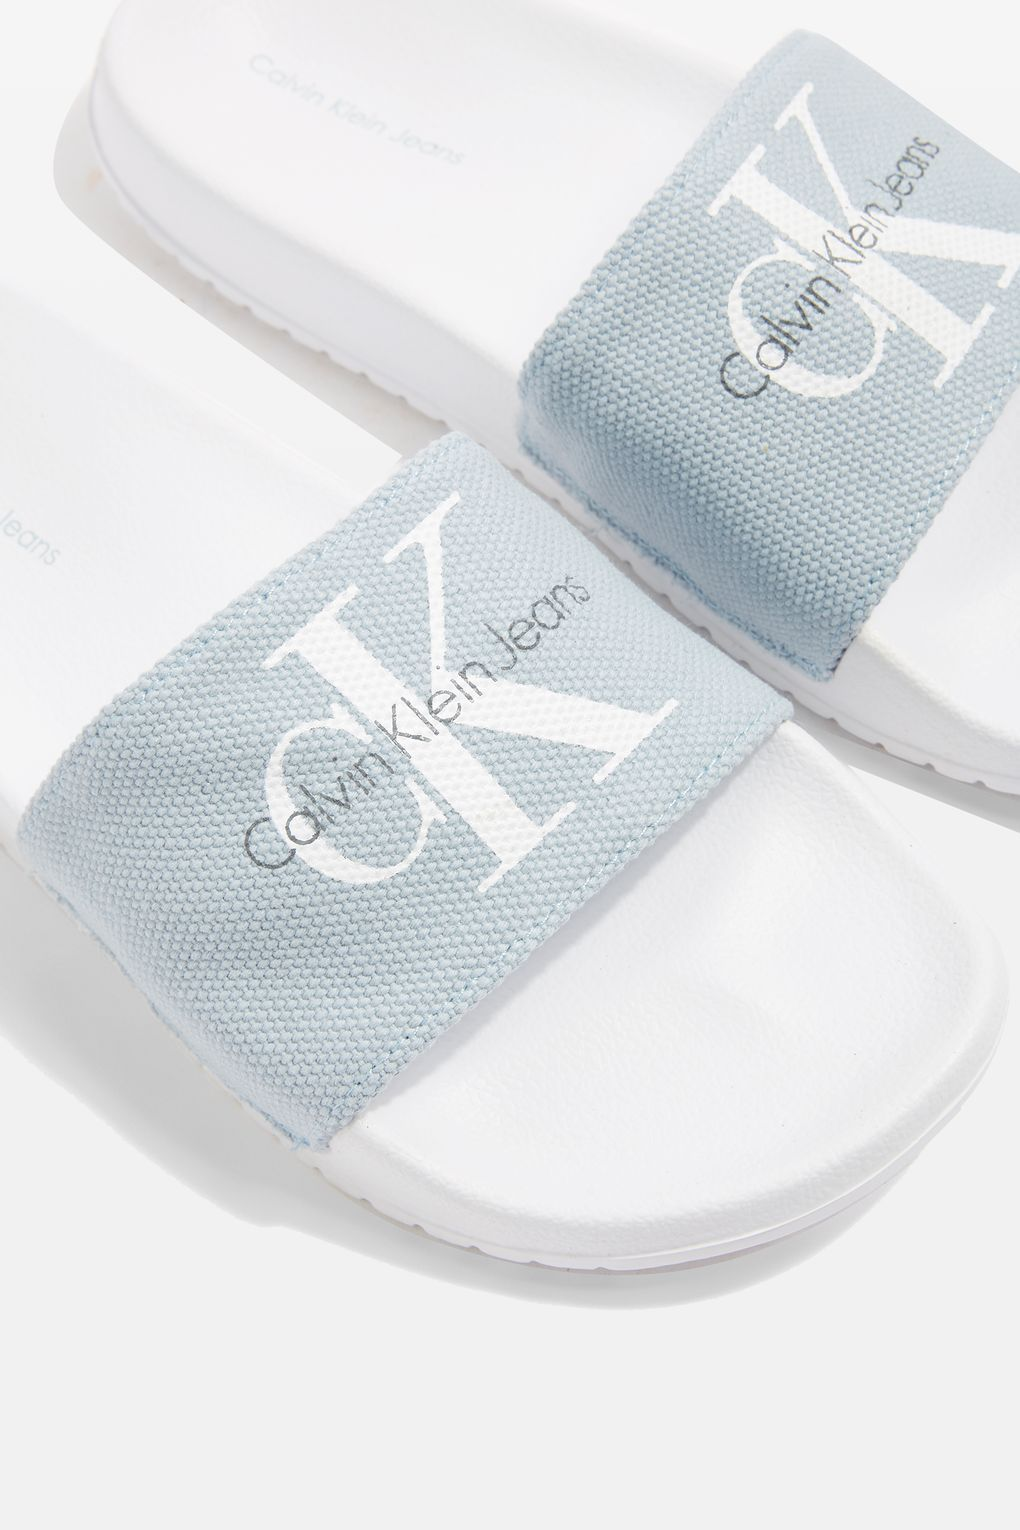 53a5da5bcbfff ... to elevate your summer footwear with the blue Jean slider by Calvin  Klein. Pair the look with frayed hem white jeans and a co-ordinating CK logo  top.